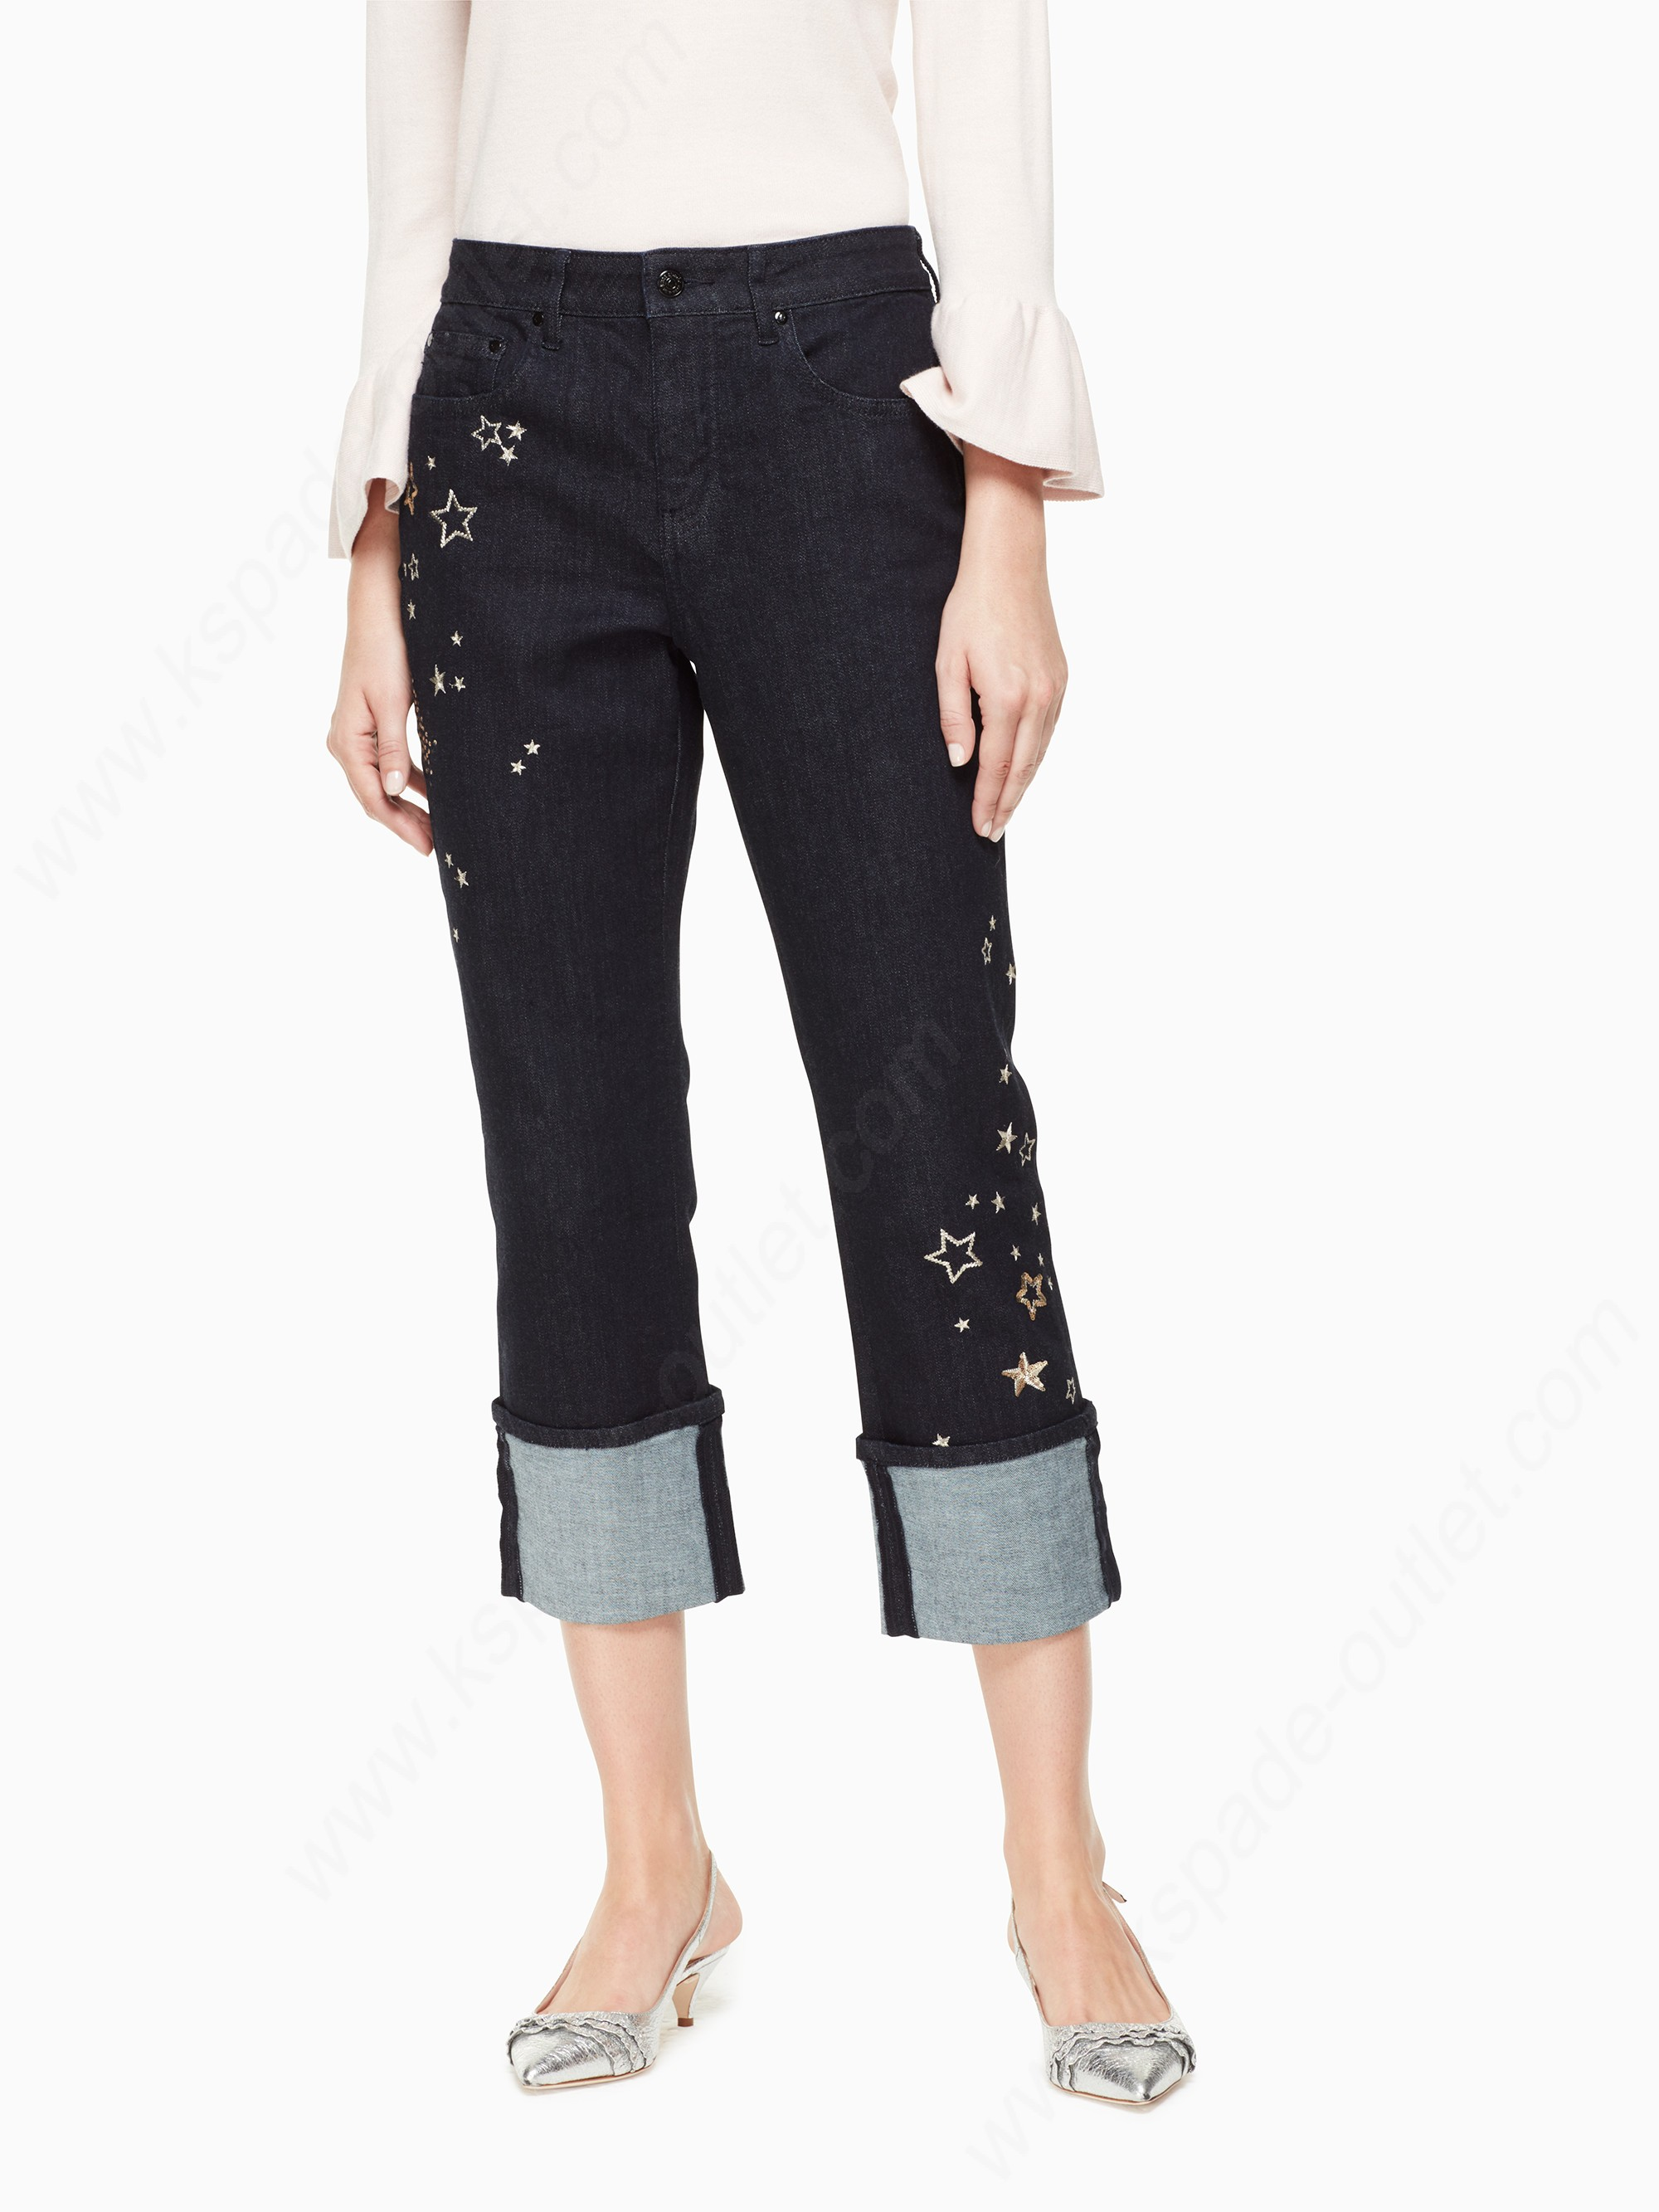 Kate Spade Womens Clothing Night Sky Embellished Jean - Kate Spade Womens Clothing Night Sky Embellished Jean